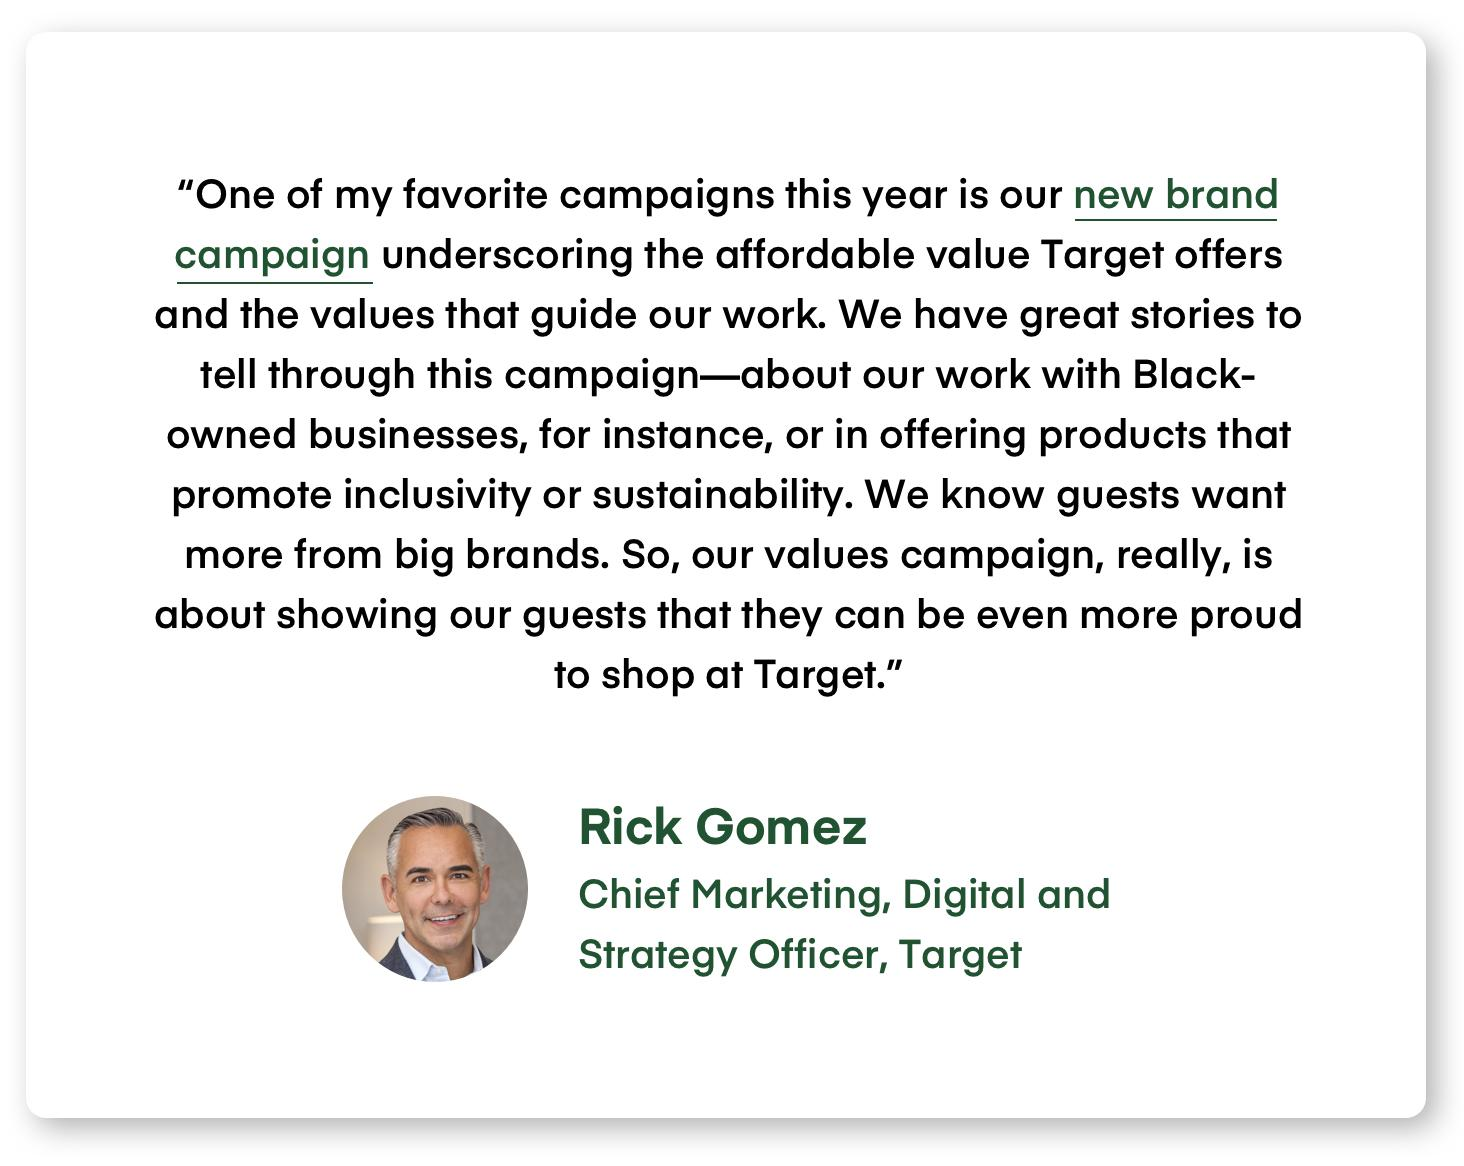 """""""One of my favorite campaigns this year is our new brand campaign underscoring the affordable value Target offers and the values that guide our work. We have great stories to tell through this campaign—about our work with Black-owned businesses, for instance, or in offering products that promote inclusivity or sustainability. We know guests want more from big brands. So, our values campaign, really, is about showing our guests that they can be even more proud to shop at Target."""""""